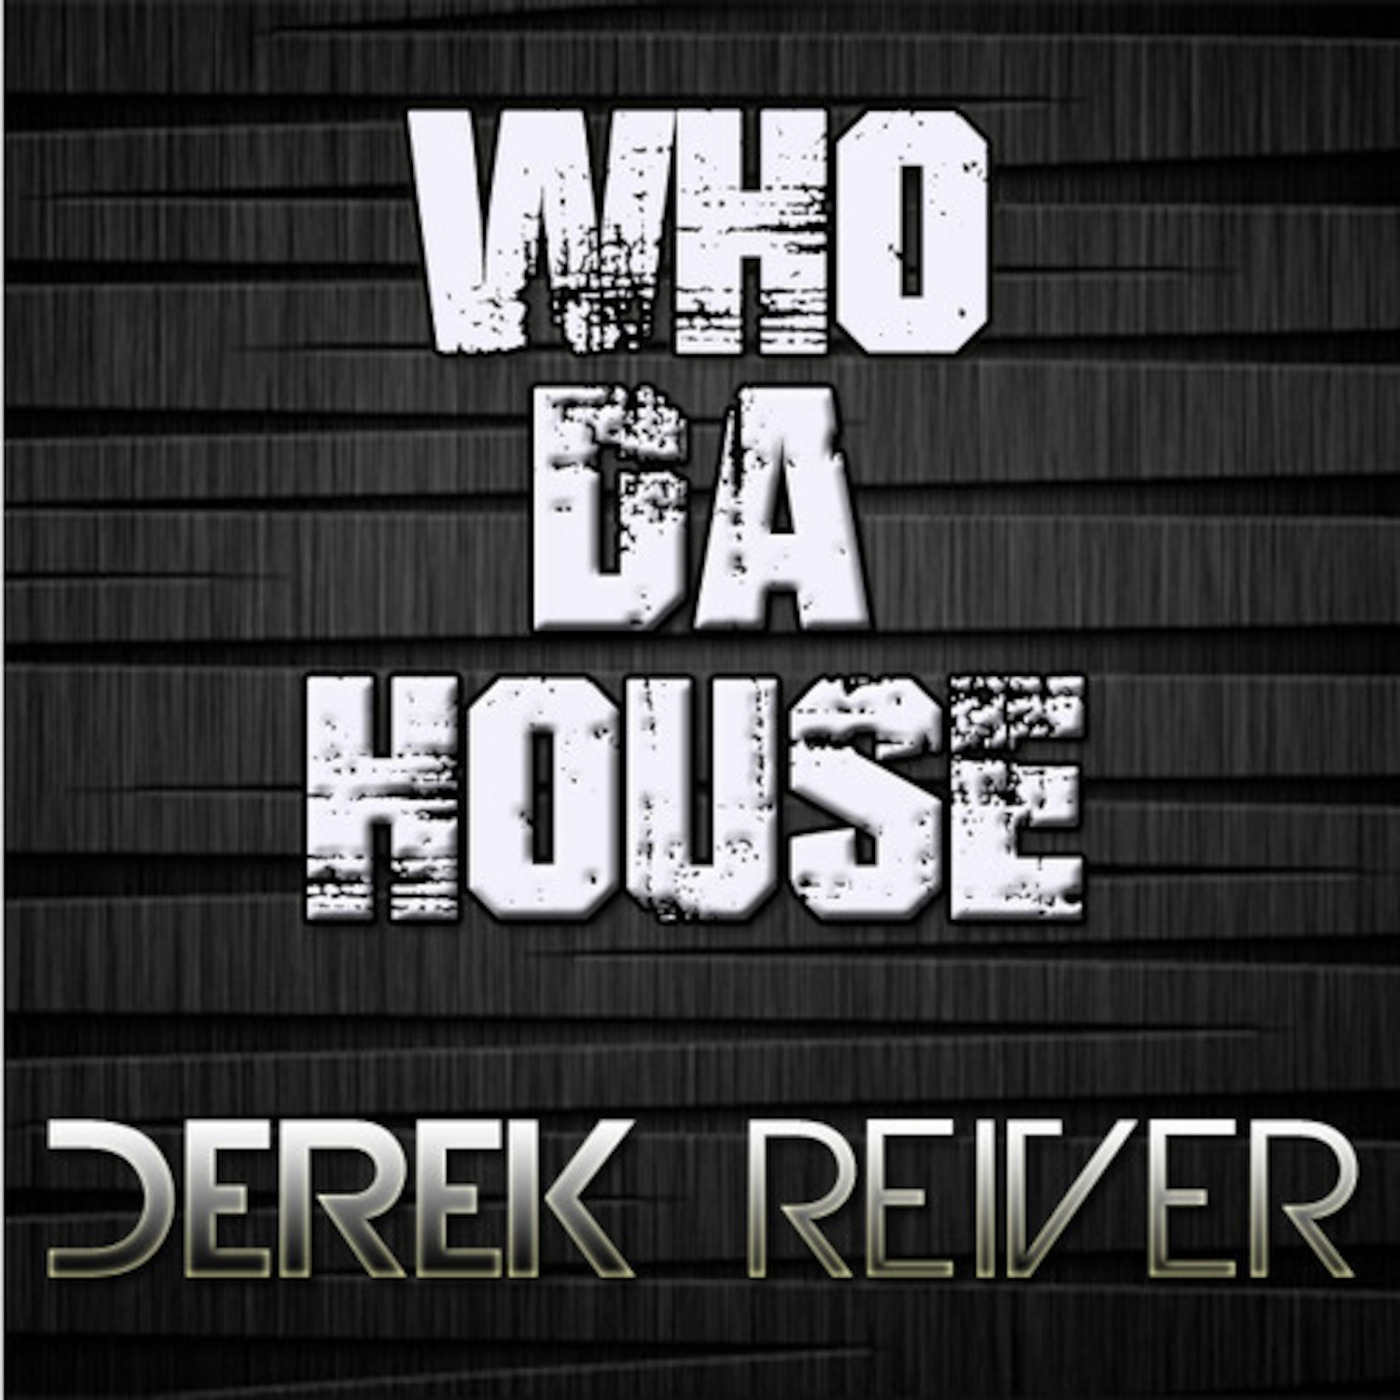 Derek Reiver's Podcast